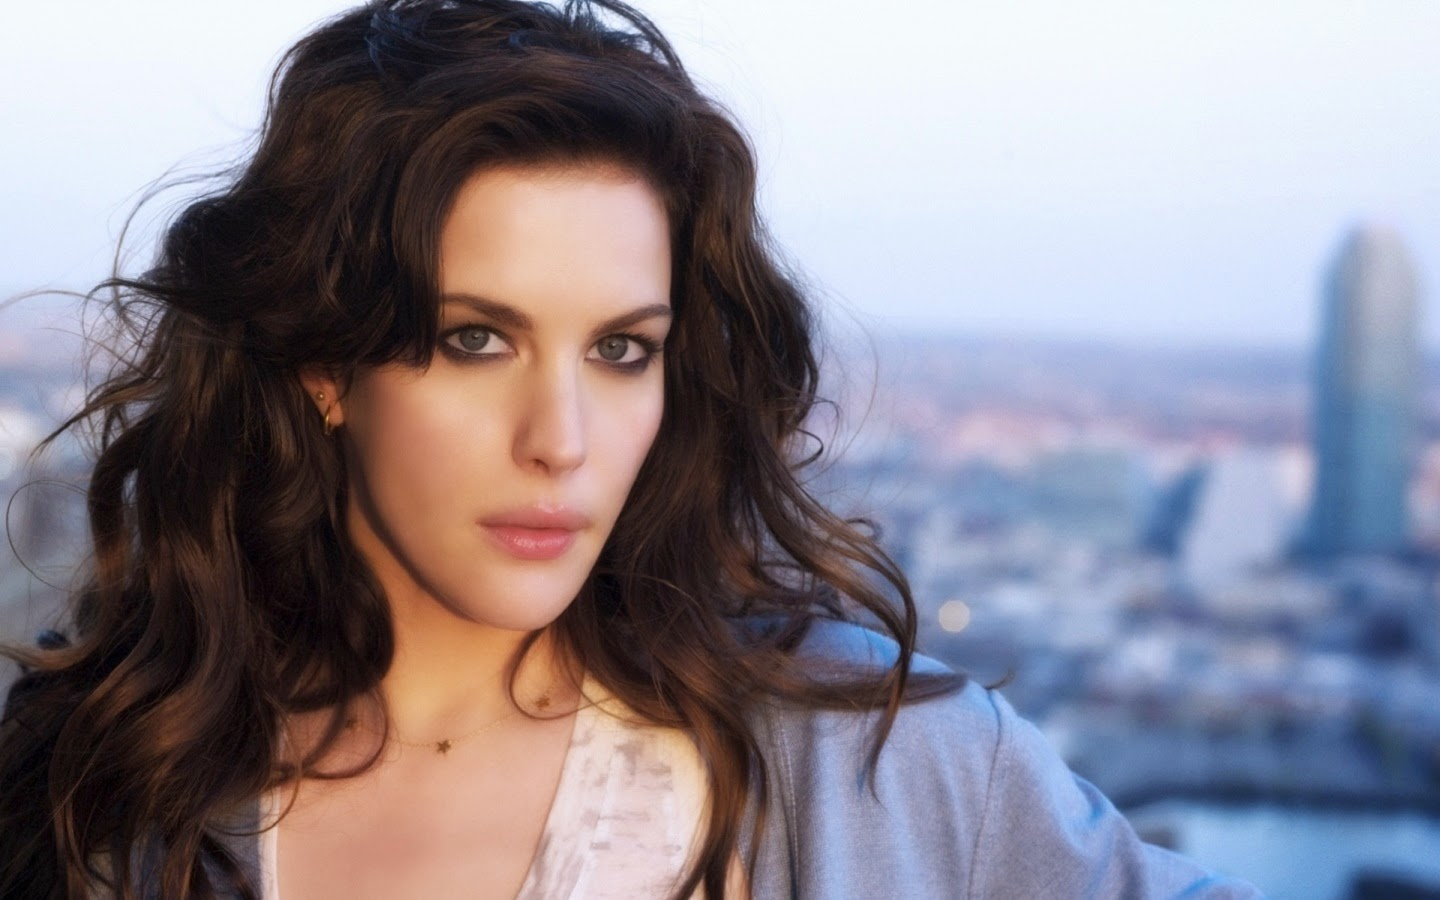 LIV TYLER_WALLSTOWN_IN_HOLLYWOOD ACTRESS_HOLLYWOOD CELEBRITIES